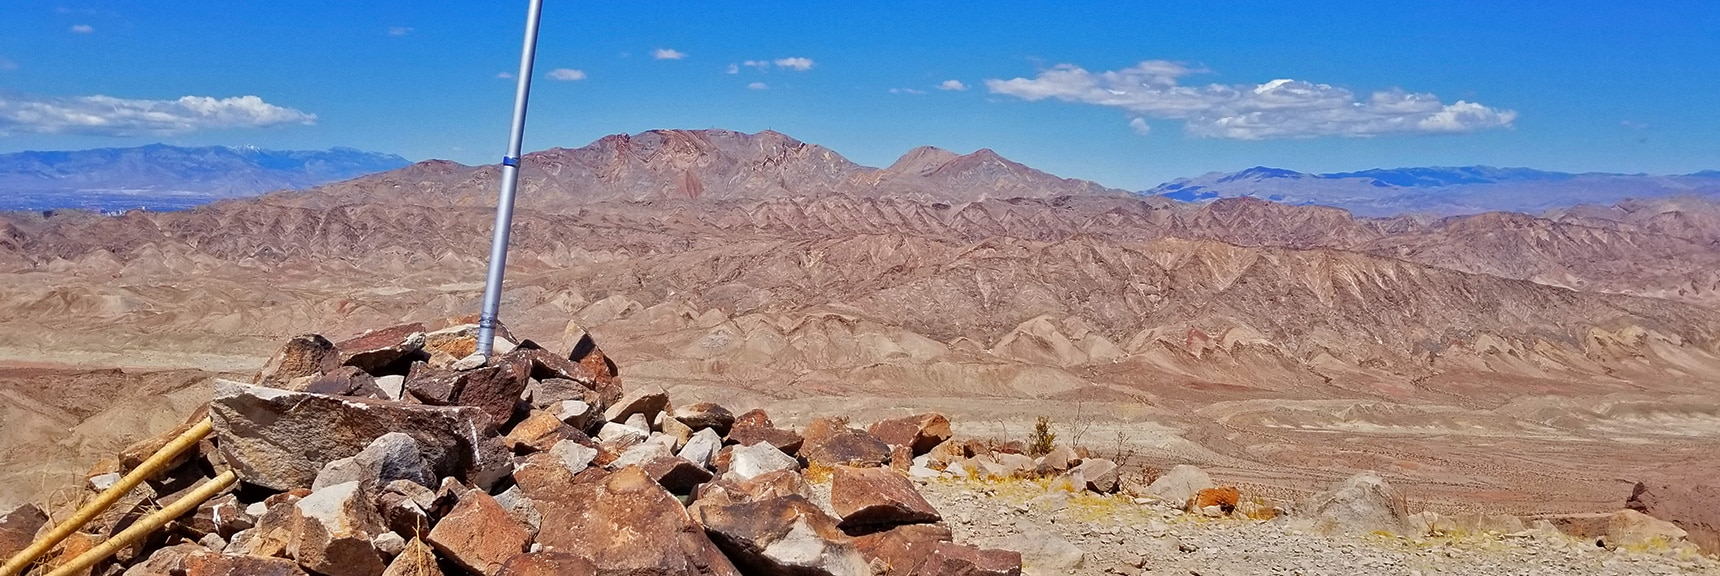 Frenchman Mt. and Mt. Charleston Wilderness from the Summit | Lava Butte | Lake Mead National Recreation Area, Nevada